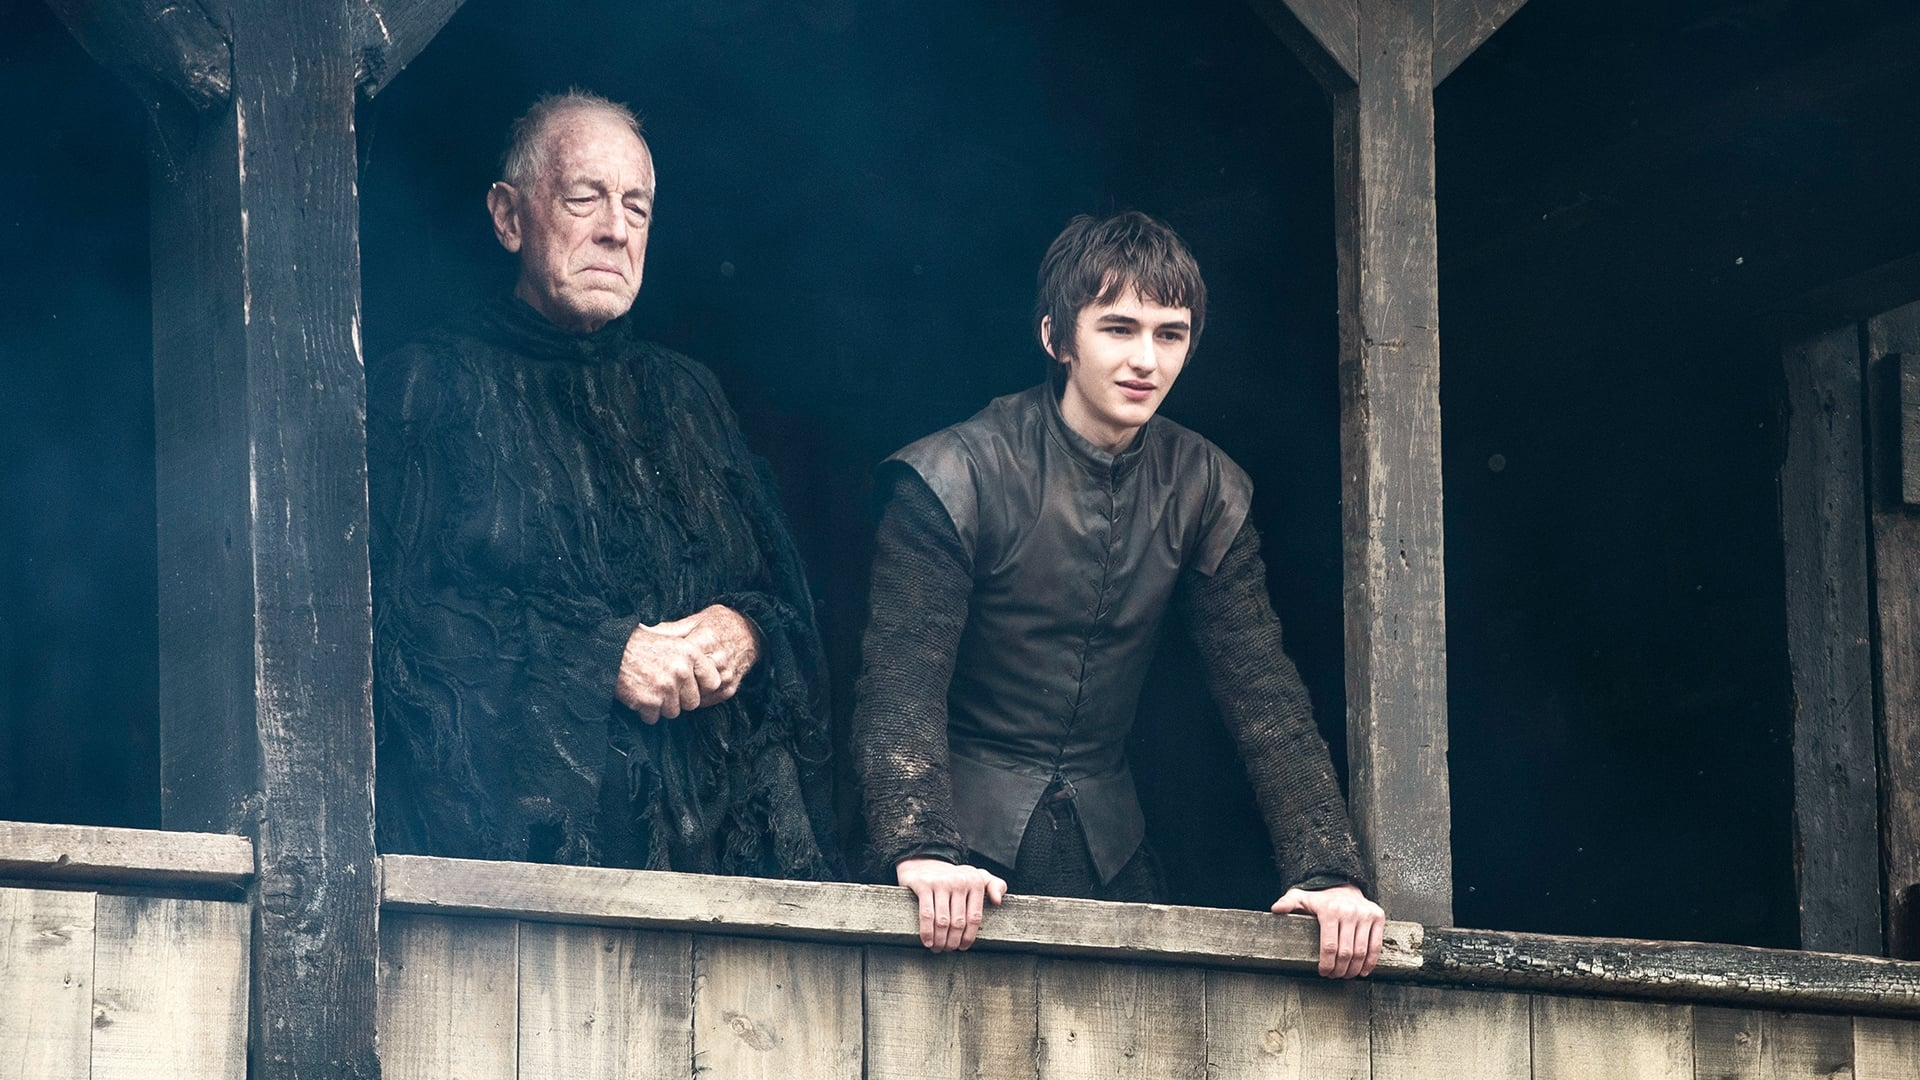 watch game of thrones season 6 episode 2 online free